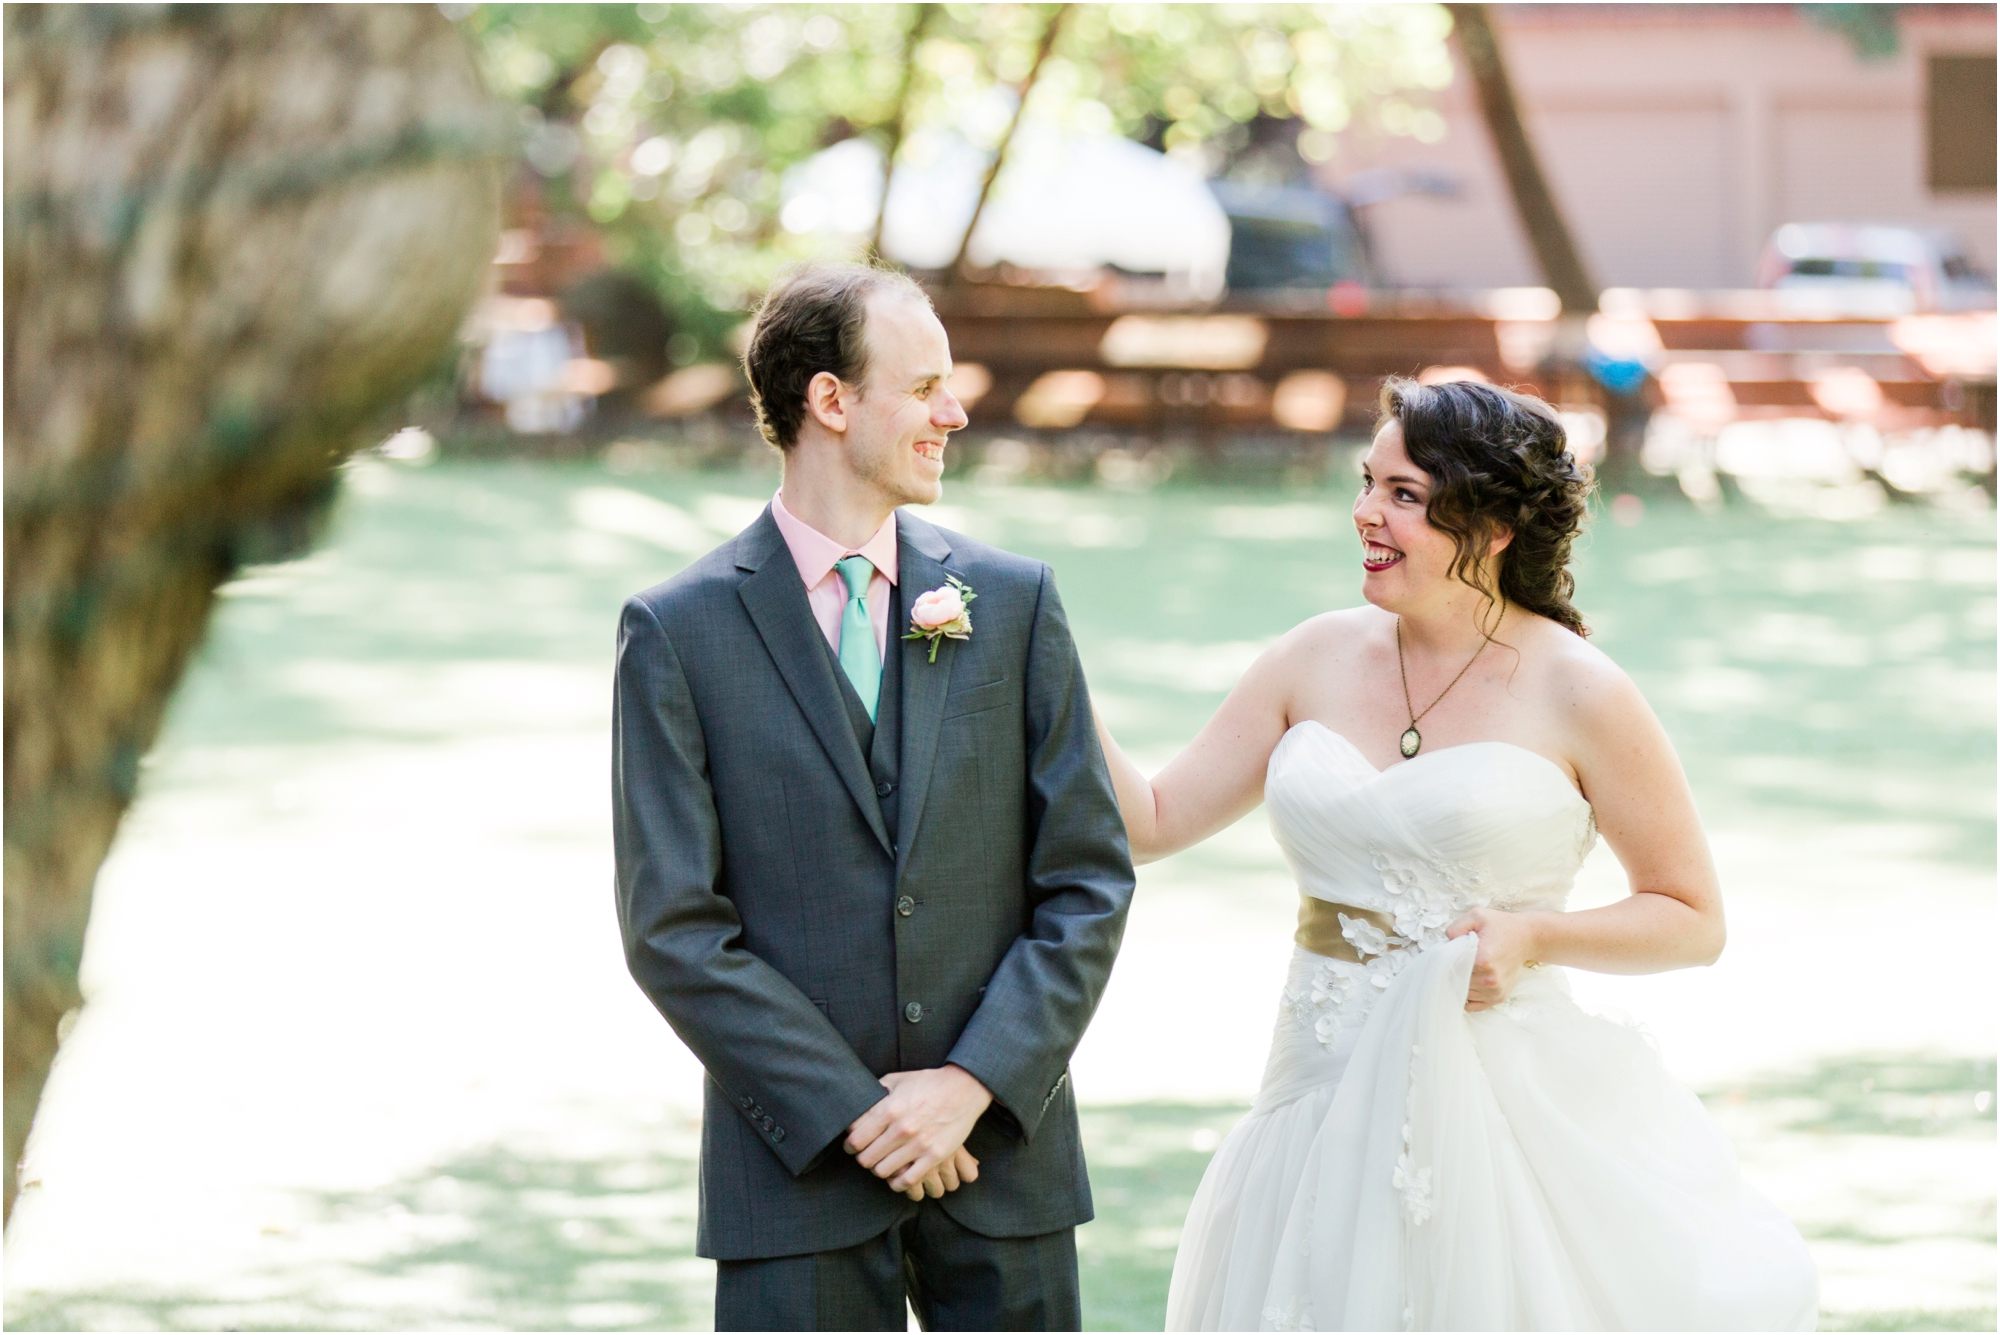 Saratoga Springs wedding pictures by Briana Calderon Photography_1822.jpg